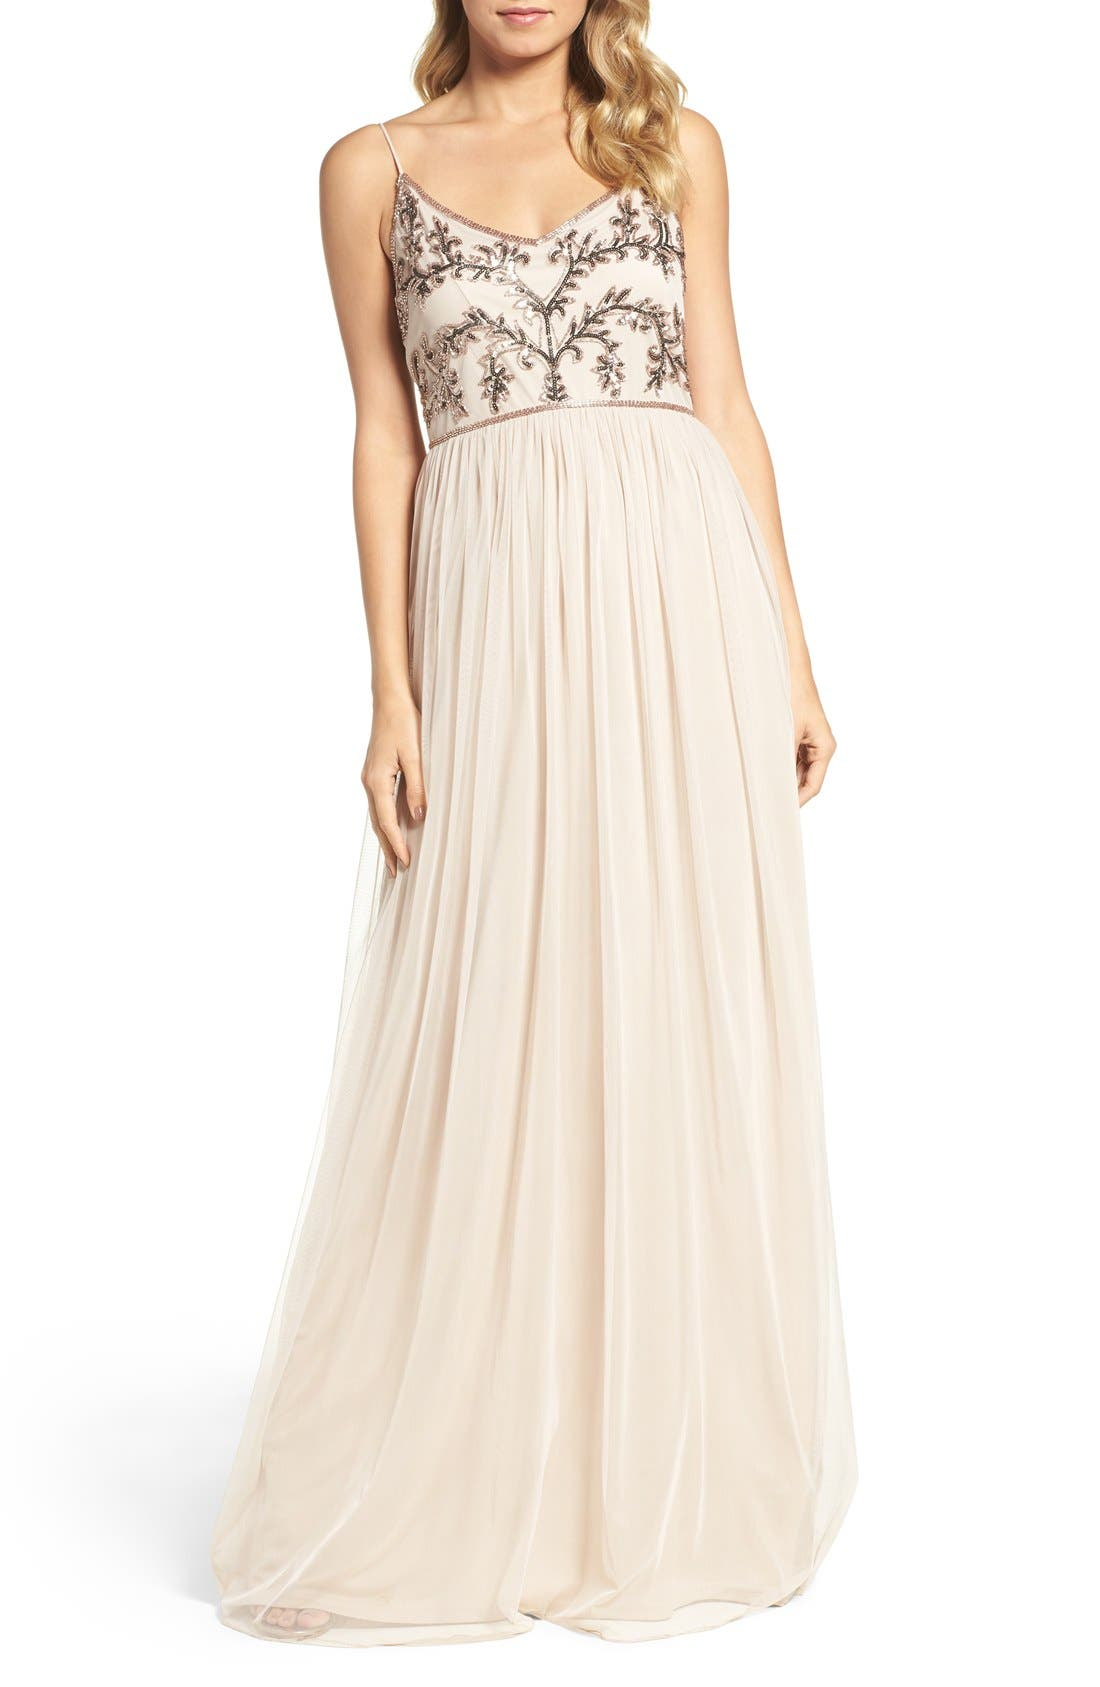 Alternate Image 1 Selected - Adrianna Papell Spaghetti Strap Embroidered Bodice Gown